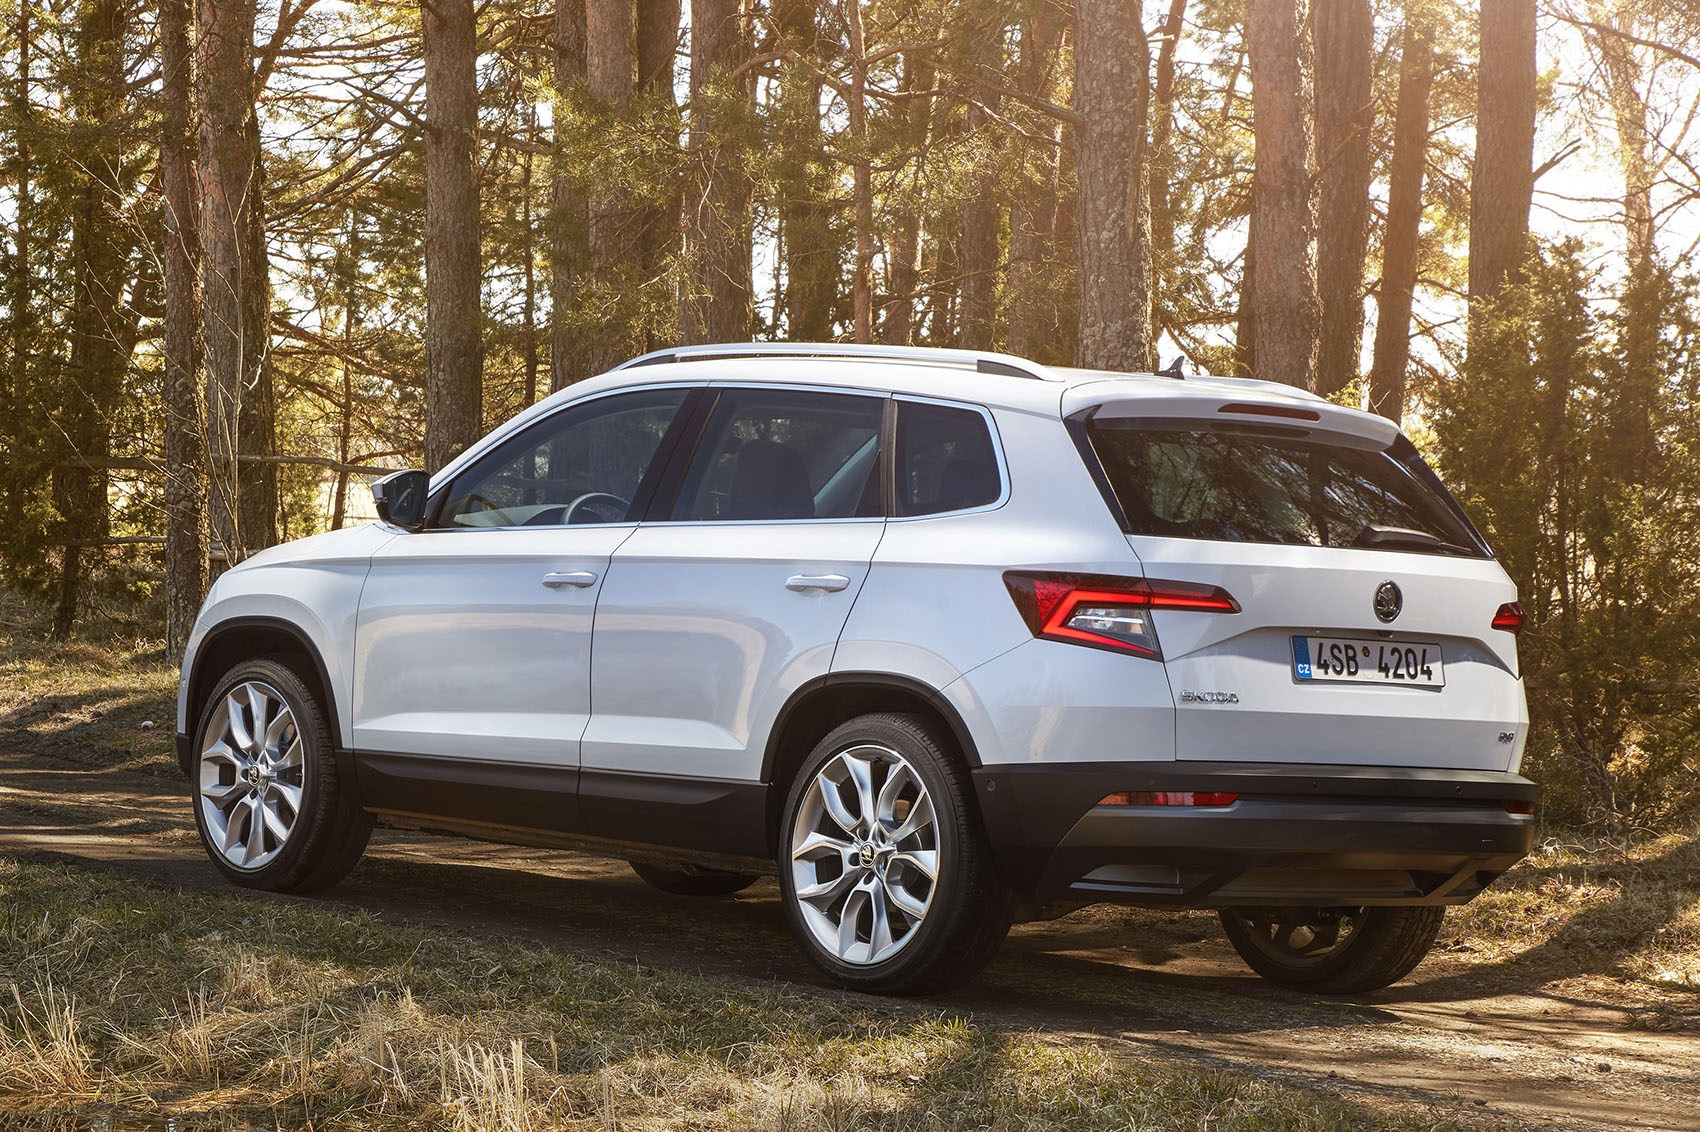 Skoda Karoq SUV review features safety and practicality